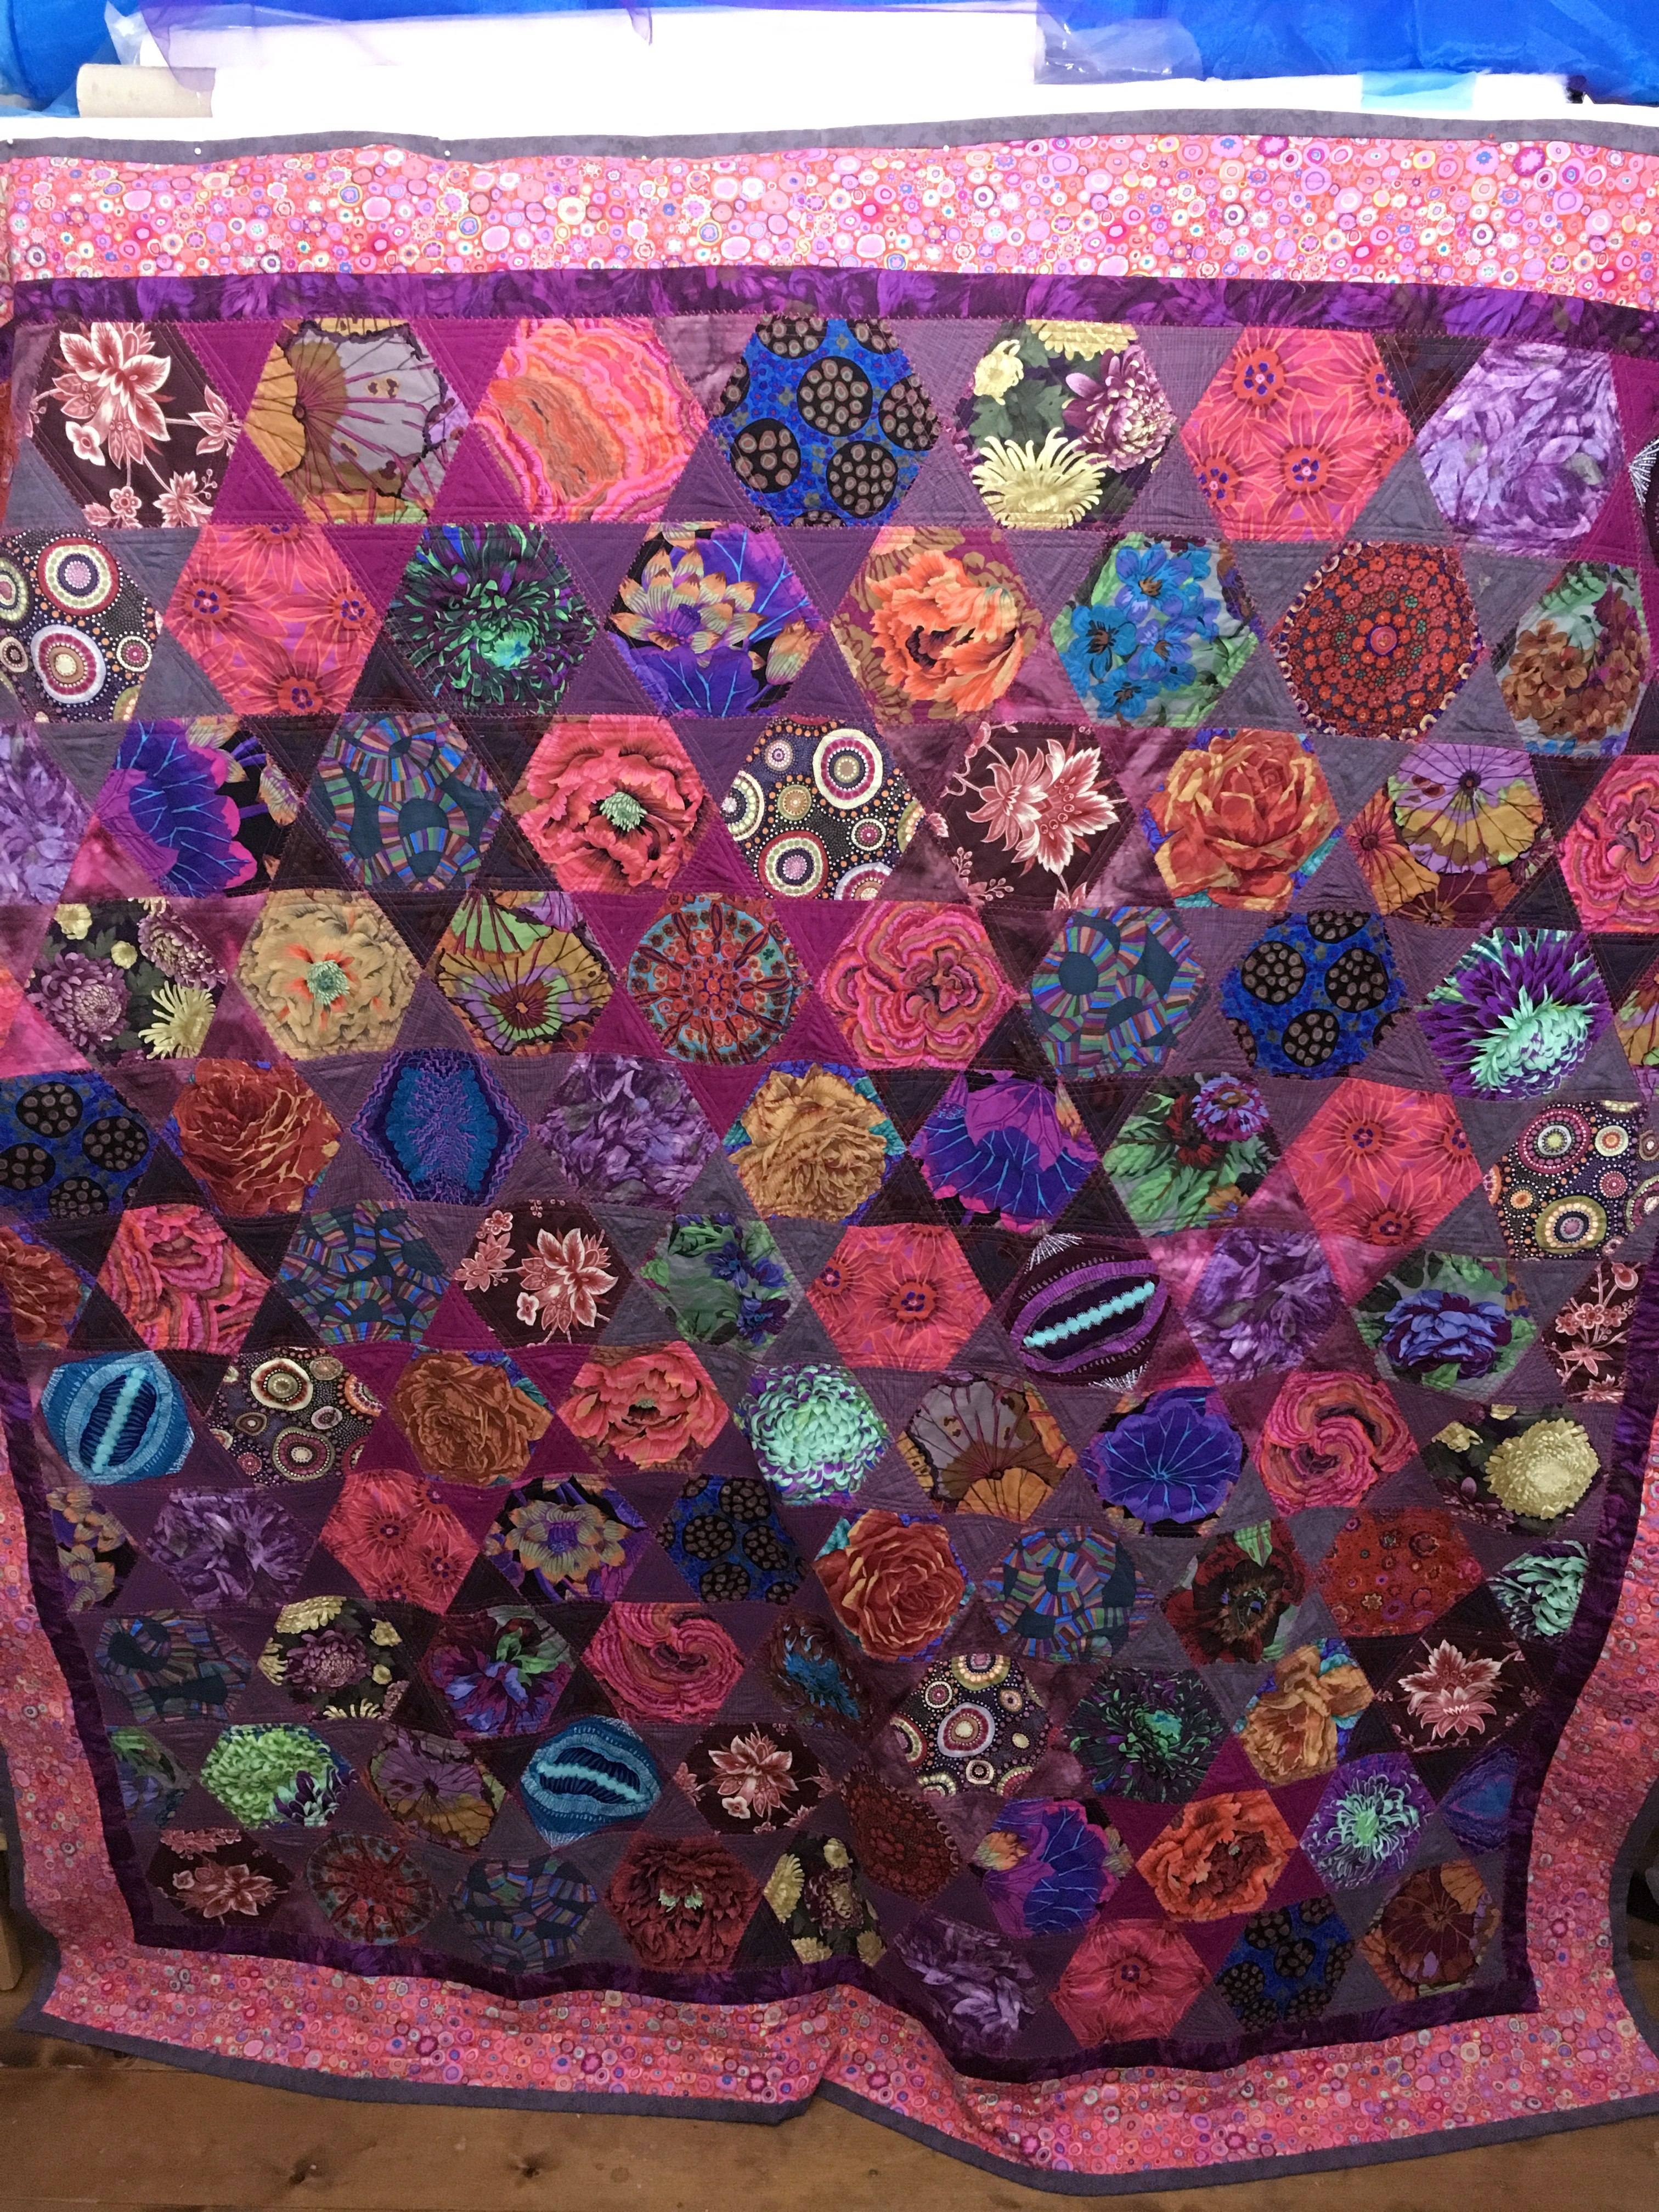 completed Kaffe fassett quilt by Gill Roberts